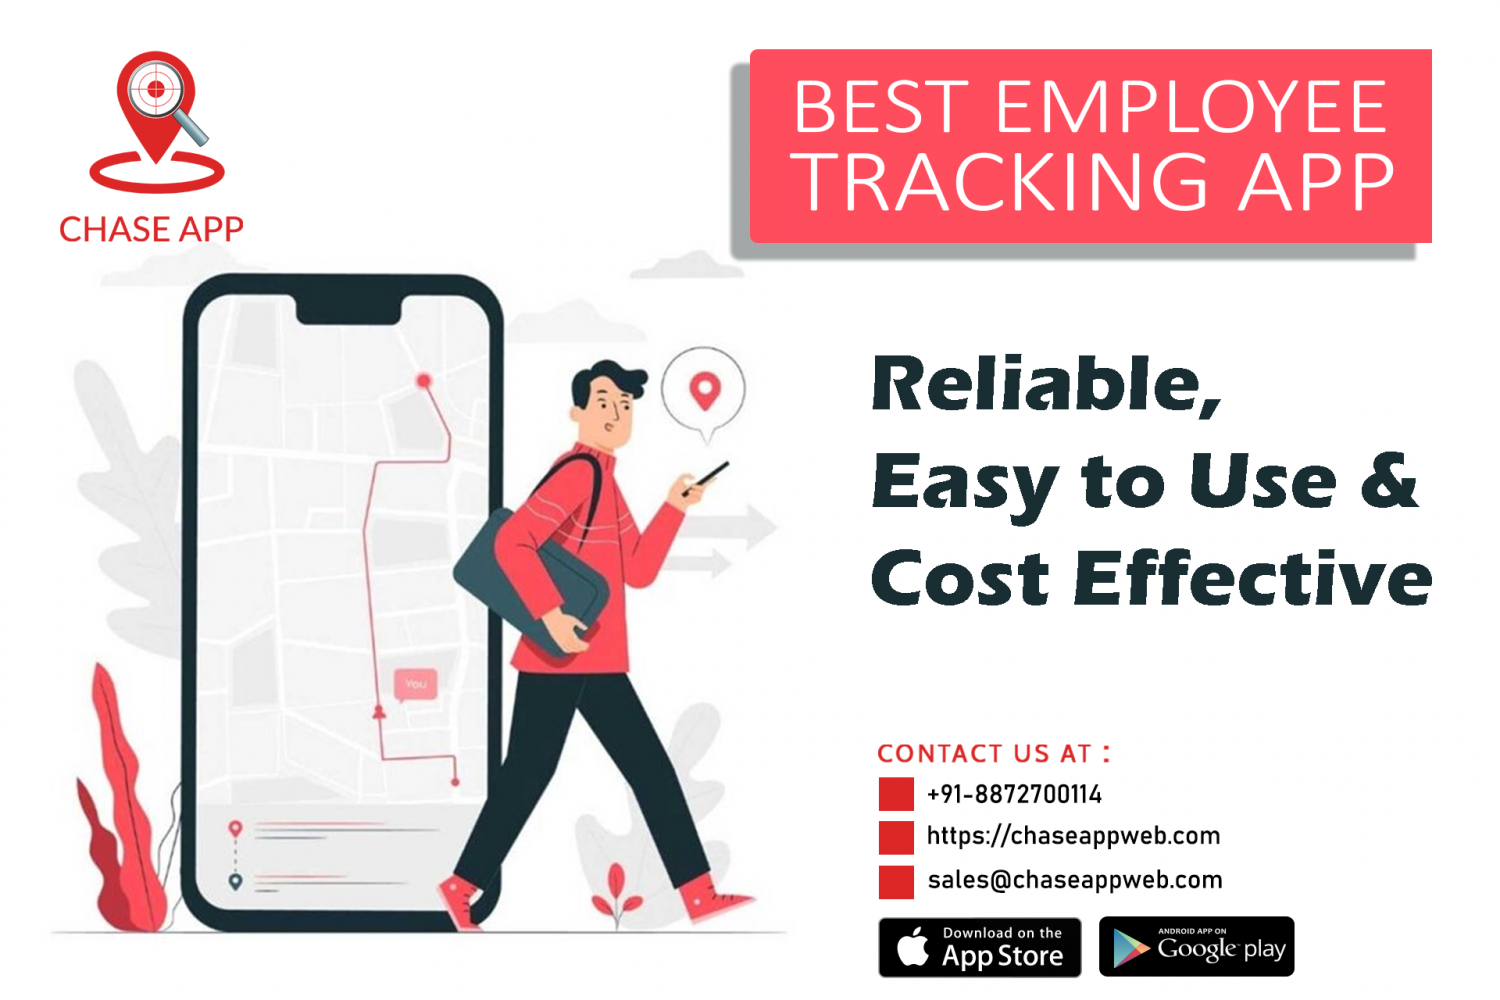 Sales Executive Tracking App Infographic